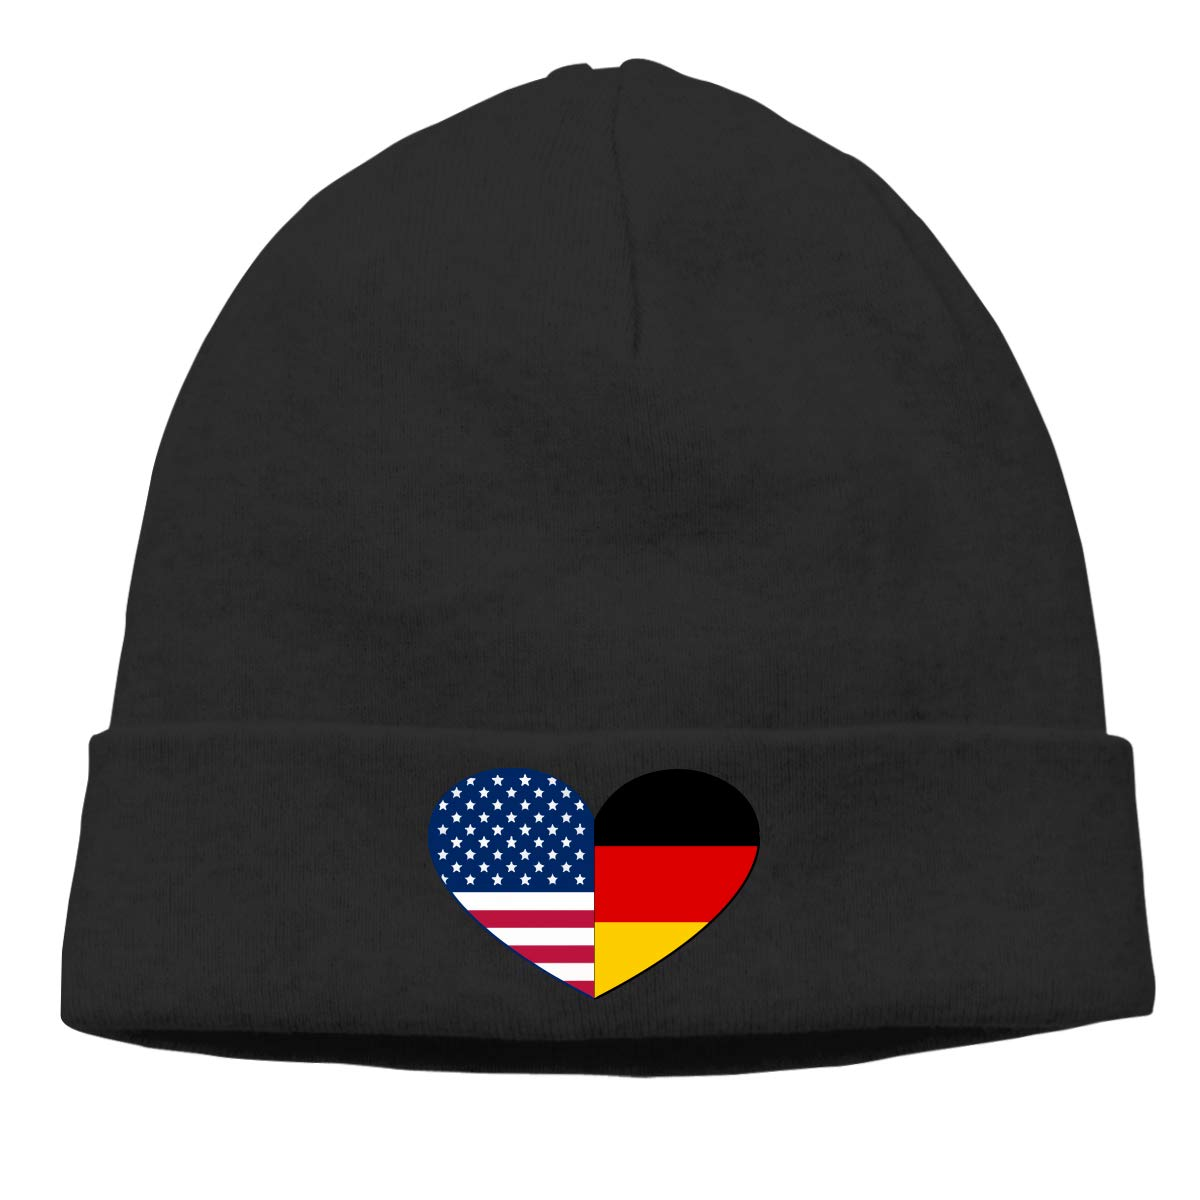 Thin Stretchy /& Soft Winter Cap German and American Flags Heart Men /& Women Solid Color Beanie Hat